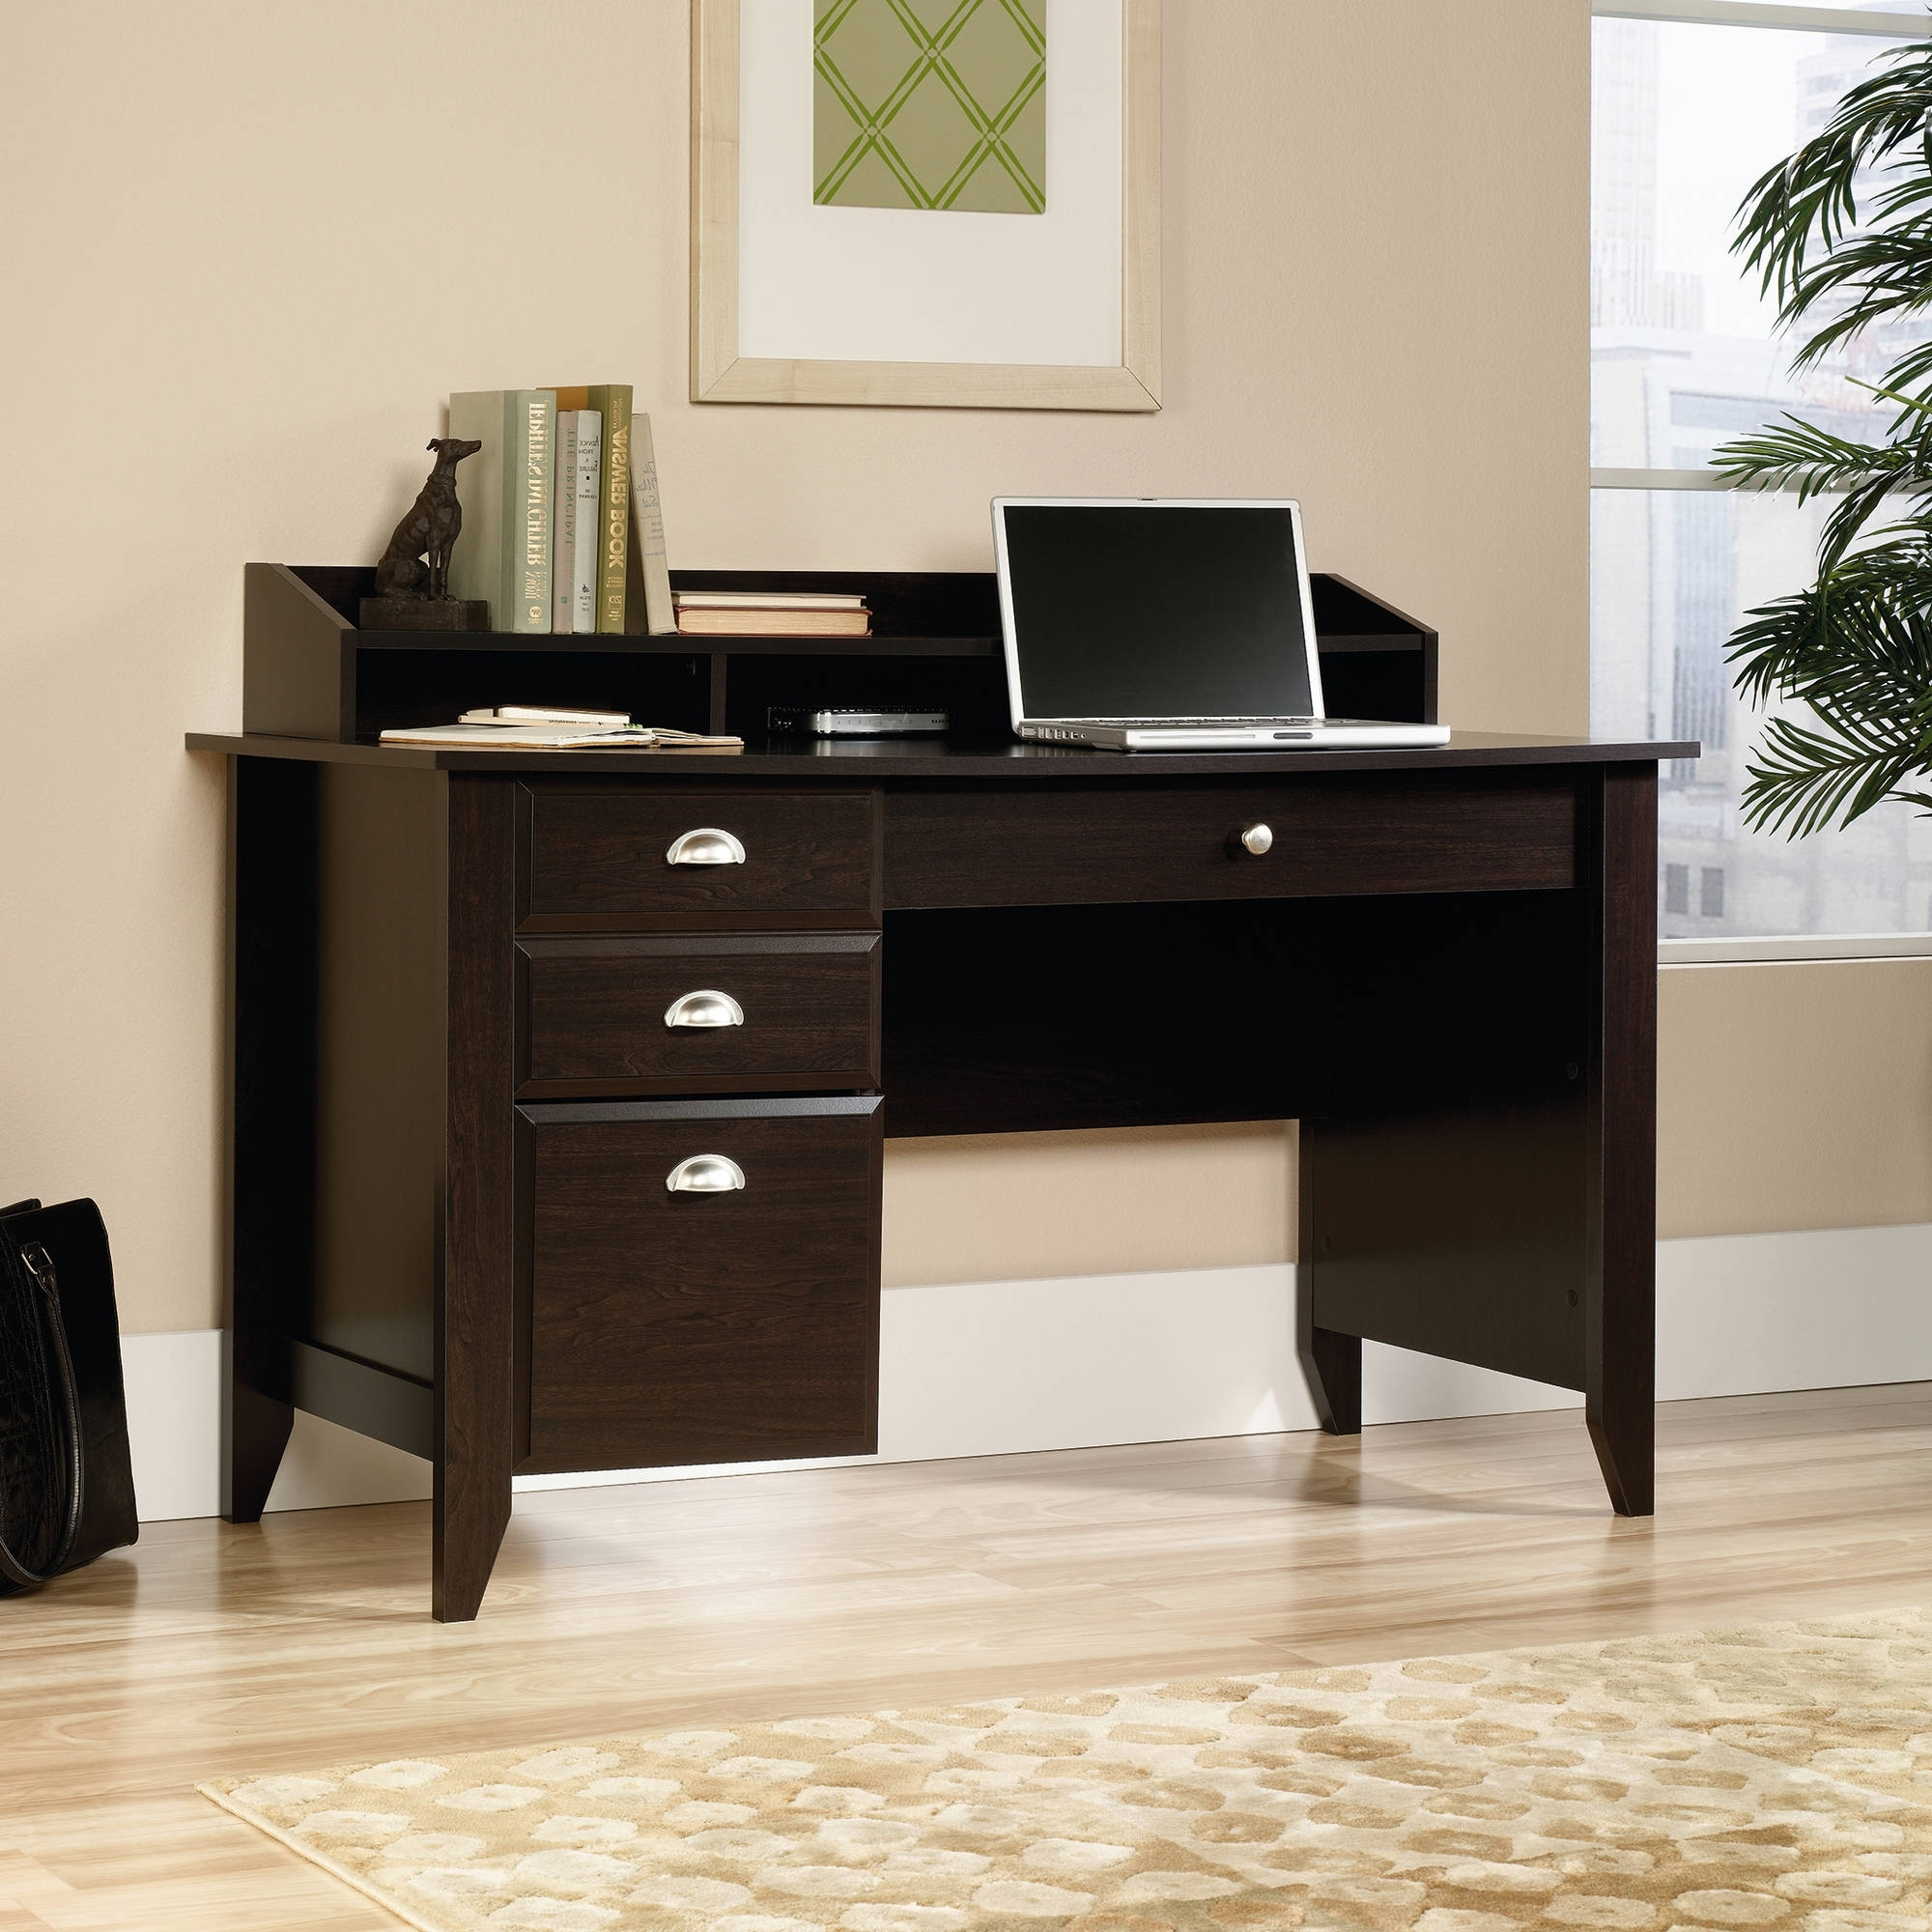 Sauder Carson Forge Corner Computer Desk – Cherry – Walmart Regarding Famous Computer Desks At Walmart (View 18 of 20)